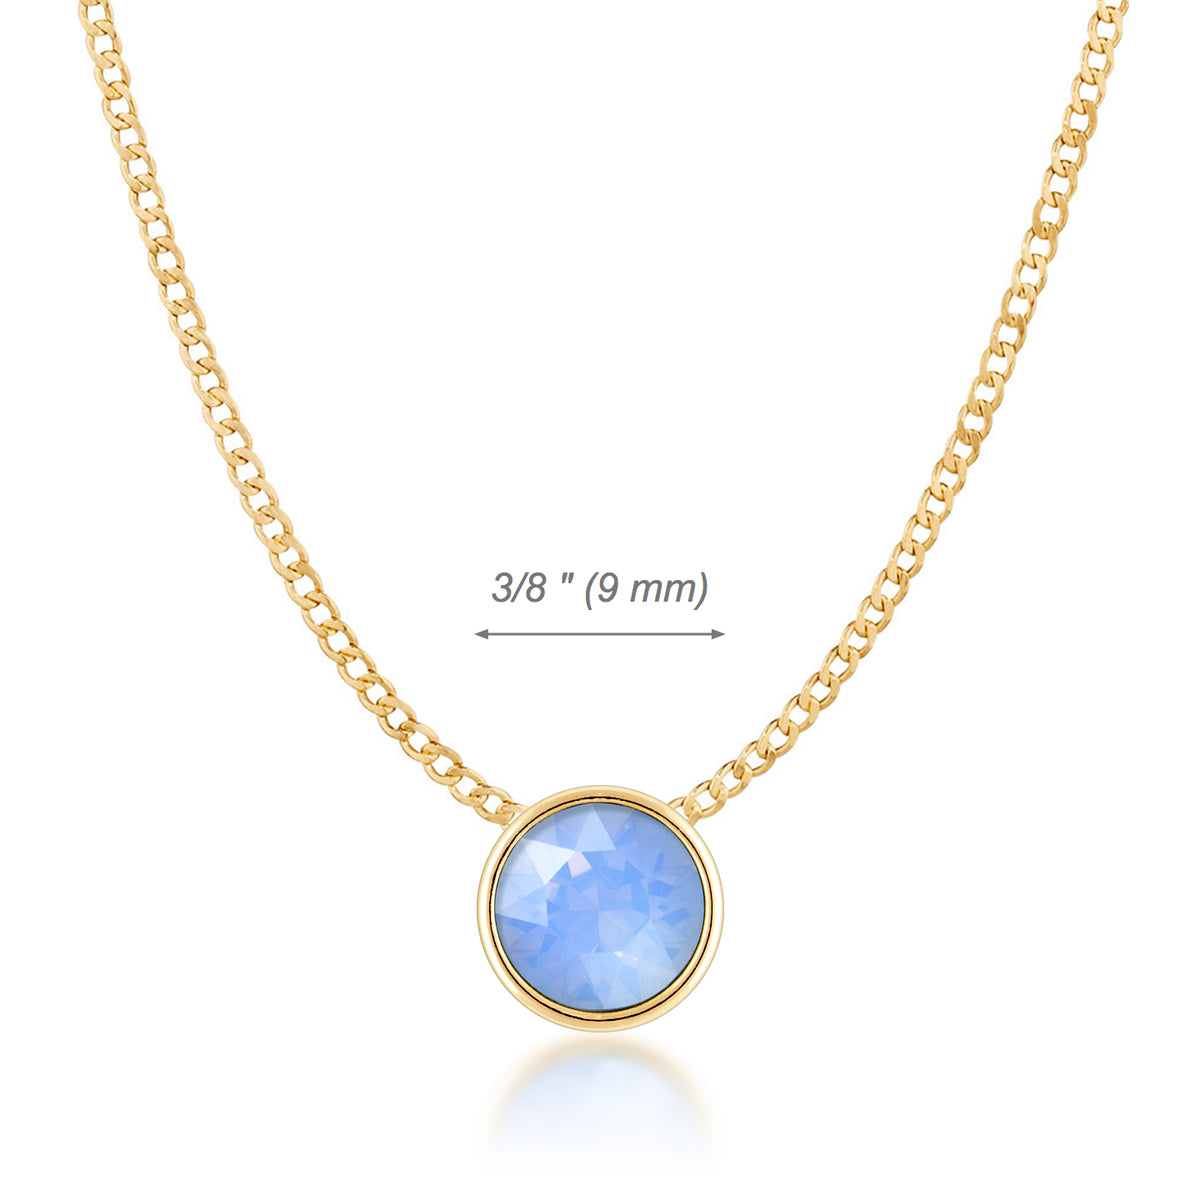 Harley Small Pendant Necklace with Air Blue Round Opals from Swarovski Gold Plated - Ed Heart